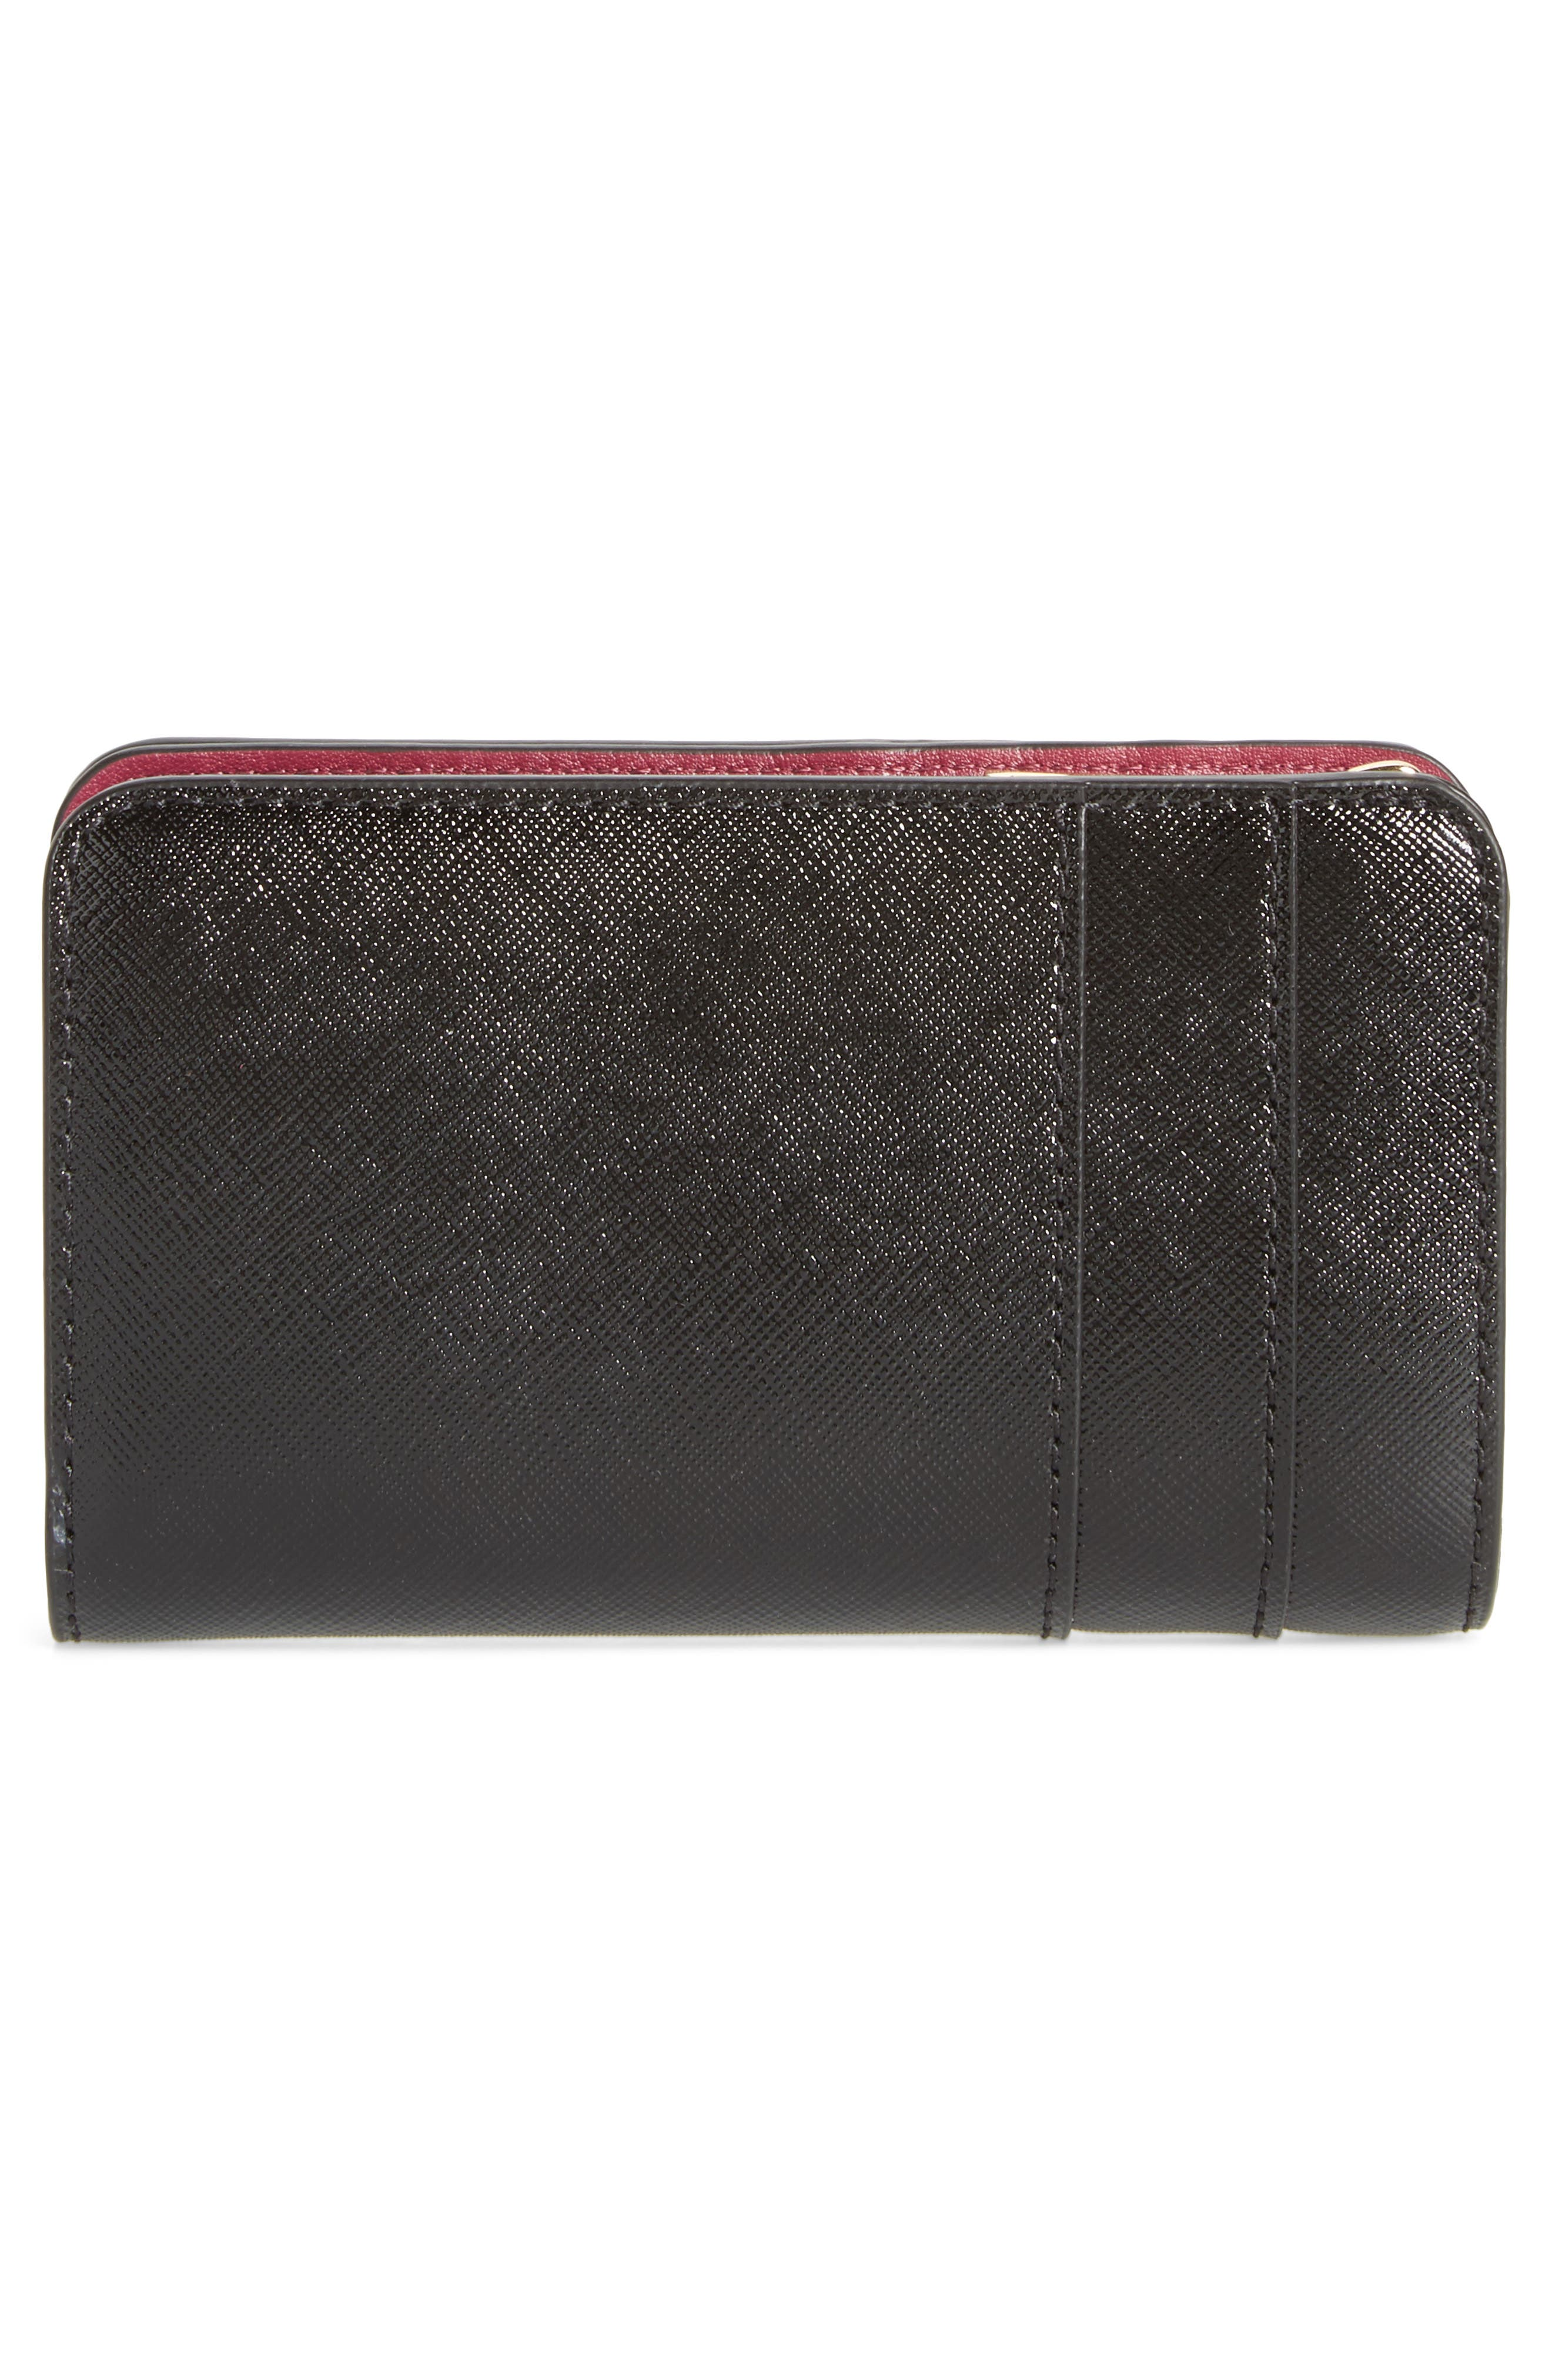 Saffiano Leather Compact Wallet,                             Alternate thumbnail 3, color,                             001